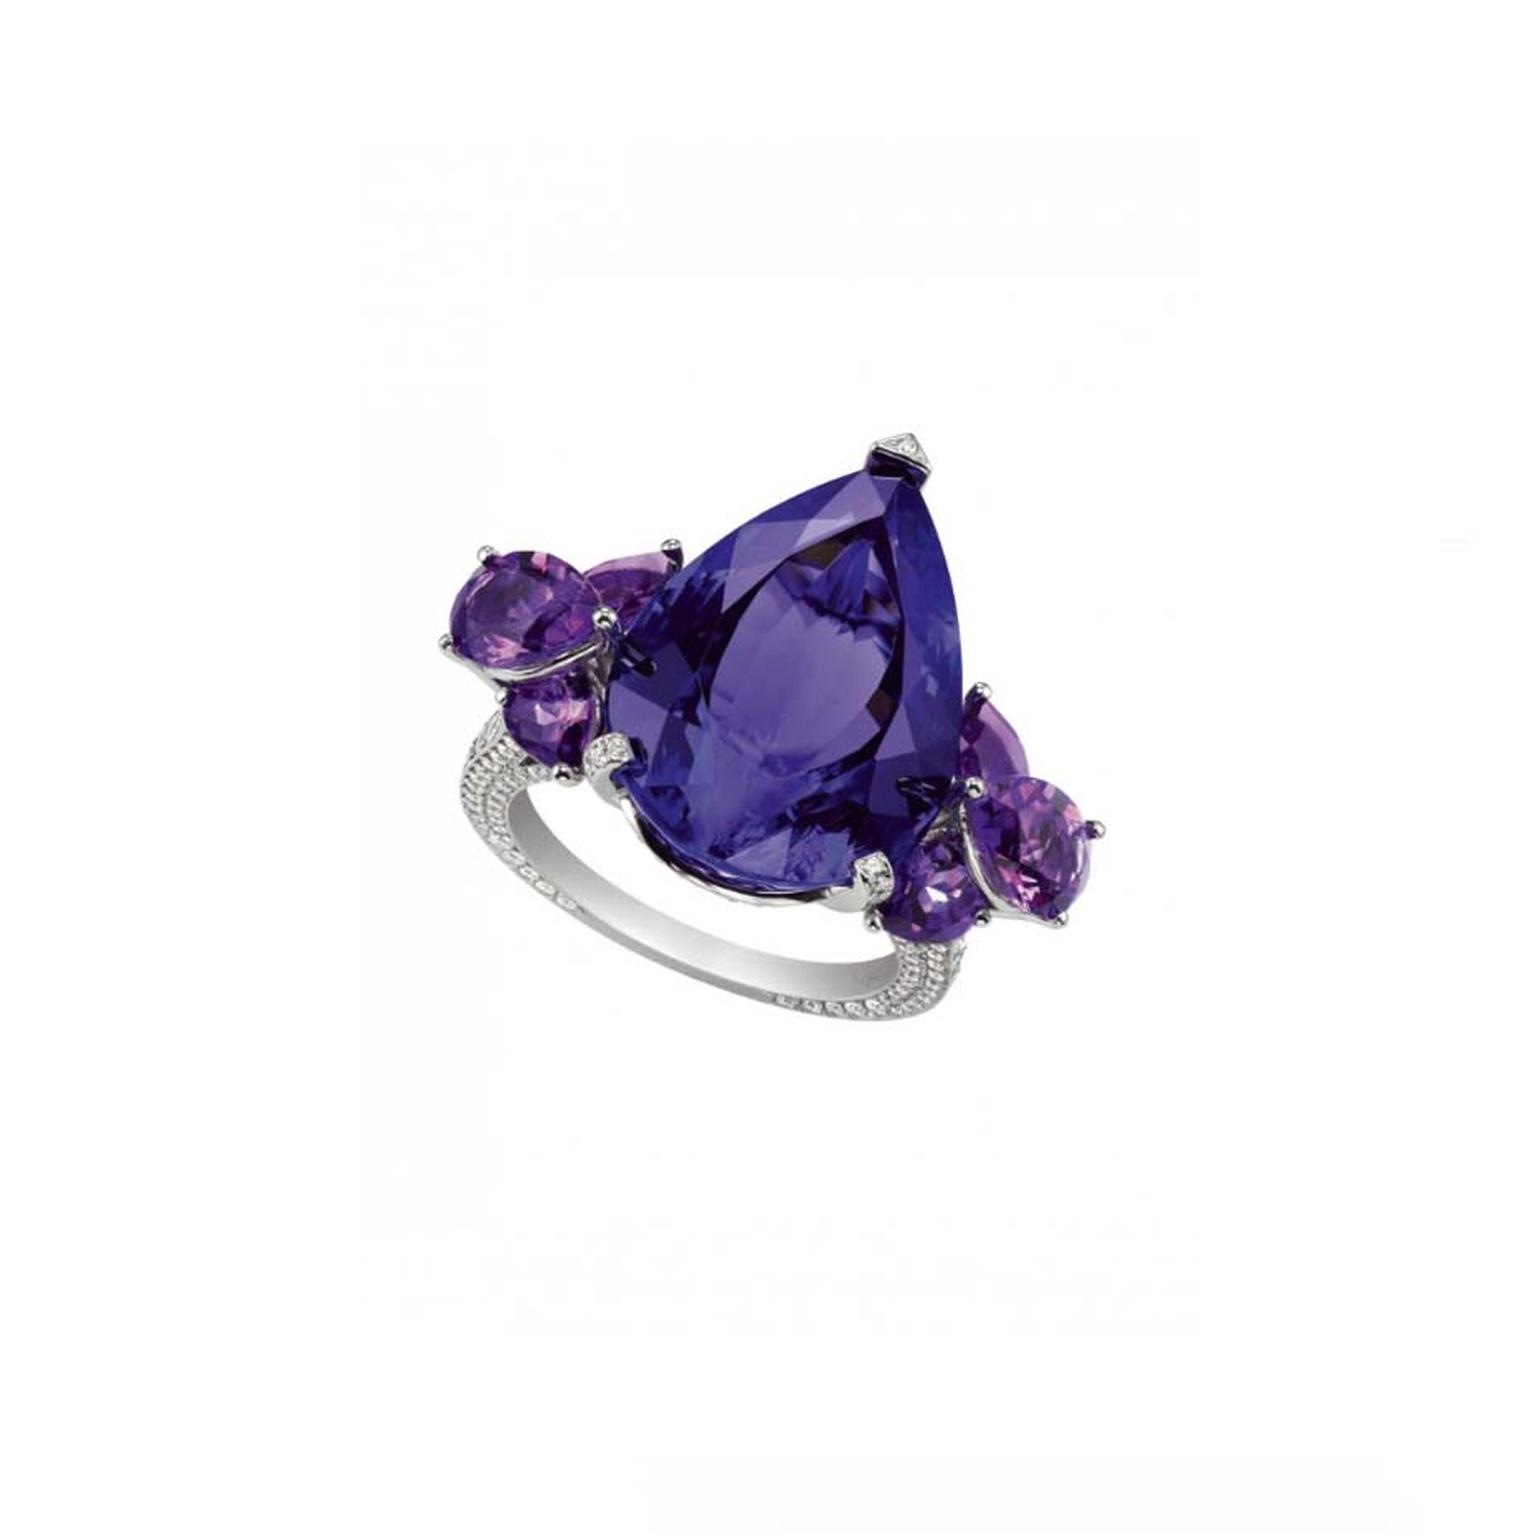 Chopard pear-shaped tanzanite ring with amethyst clusters shoulders and a delicate pavé-set diamond band.